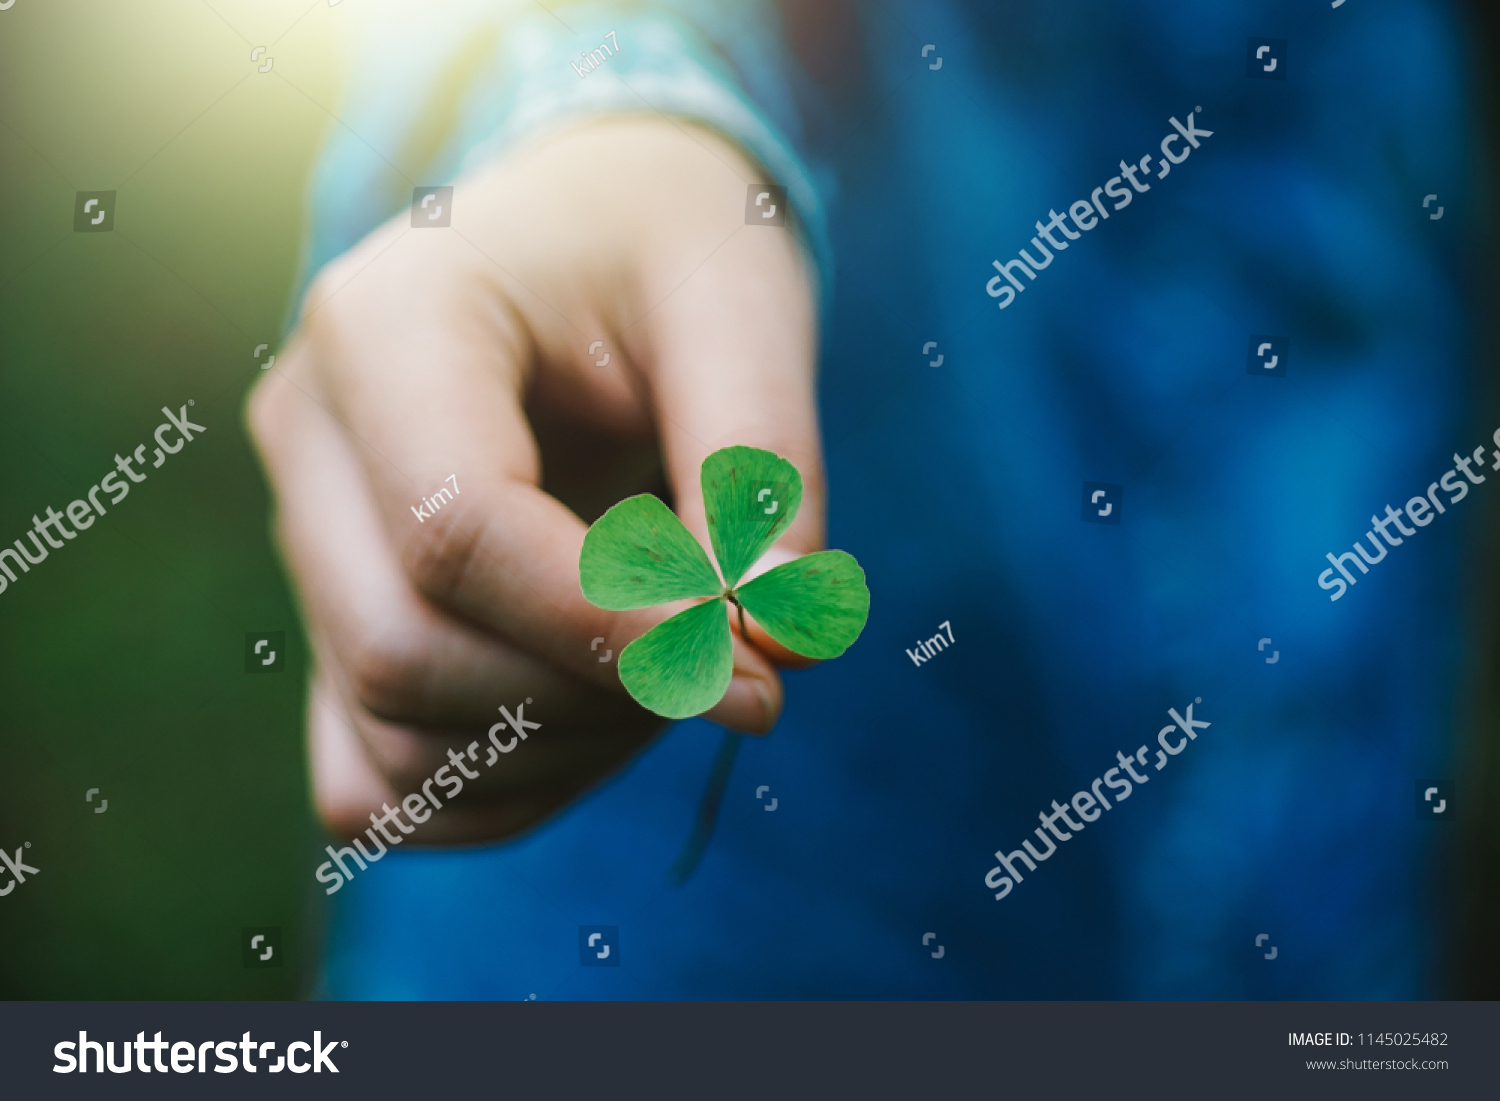 Green clover leaf in hand. #1145025482